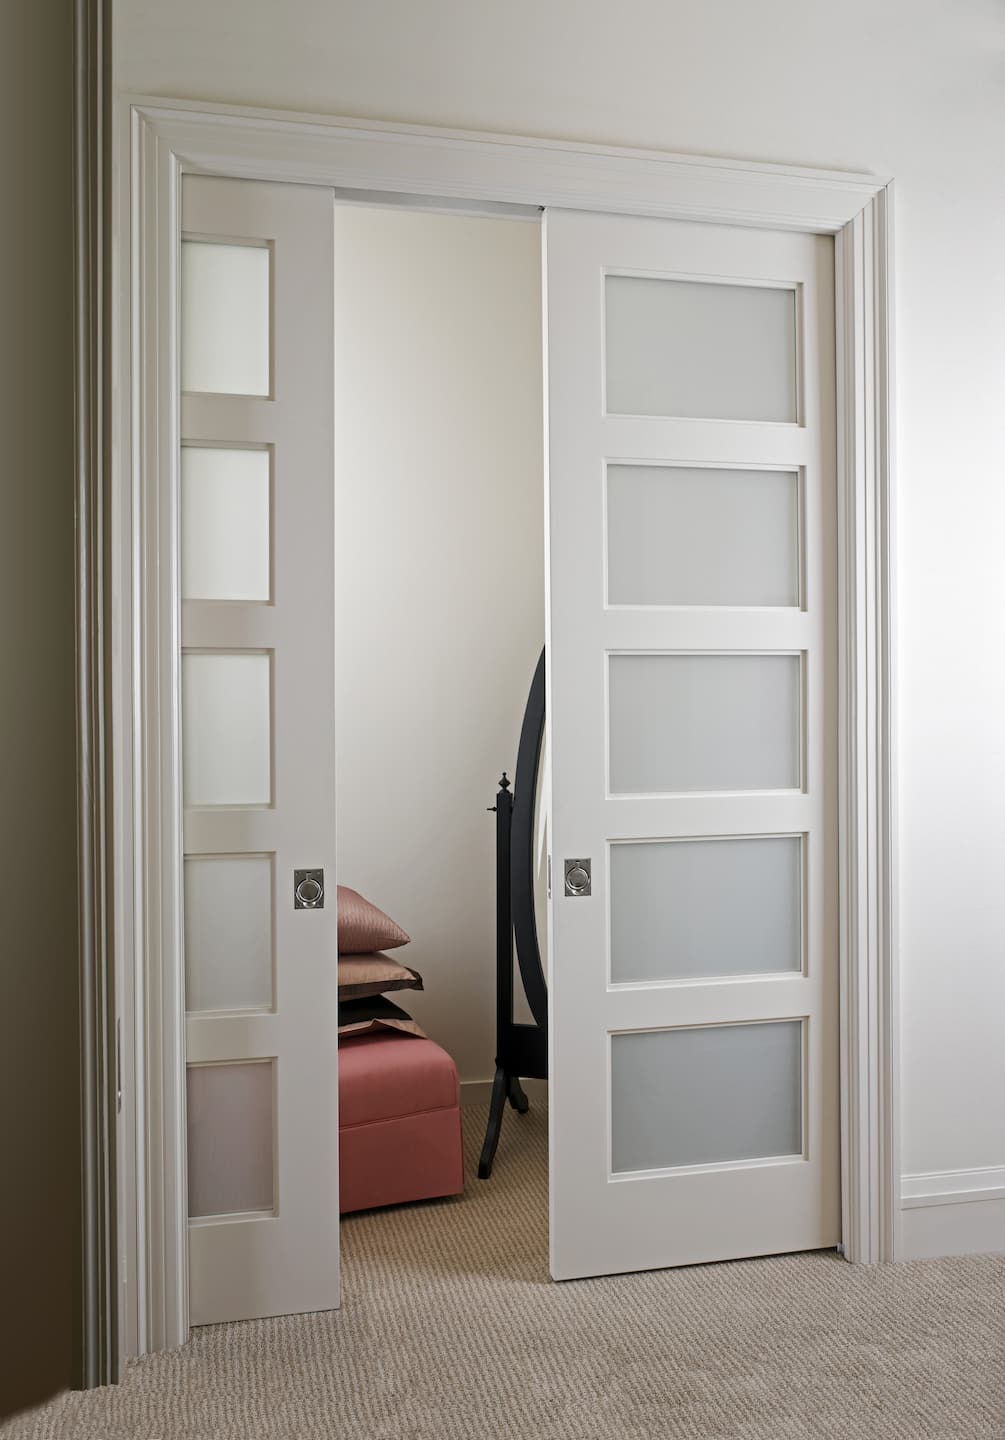 5 tips for replacing interior doors angies list eventelaan Images